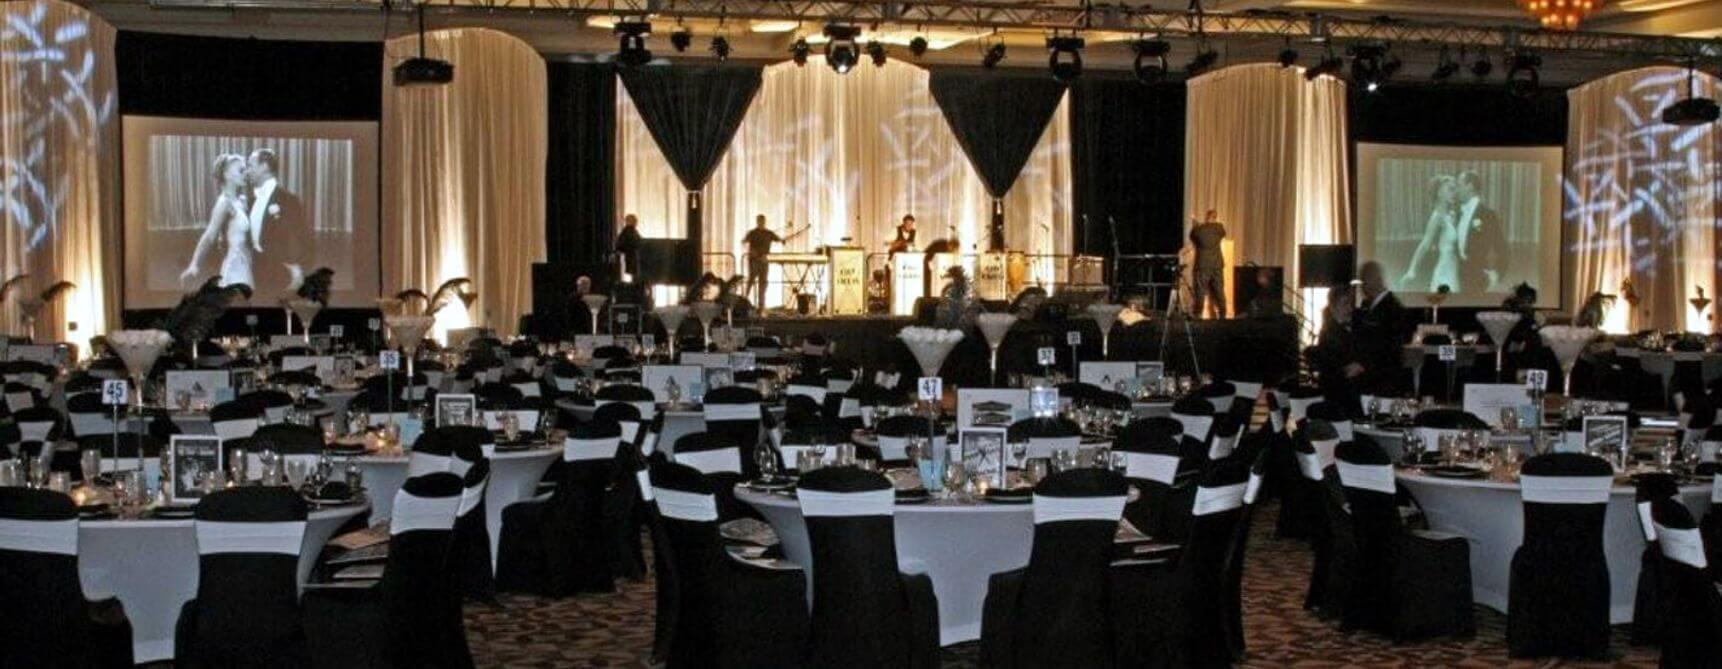 7 Formal Dining Event